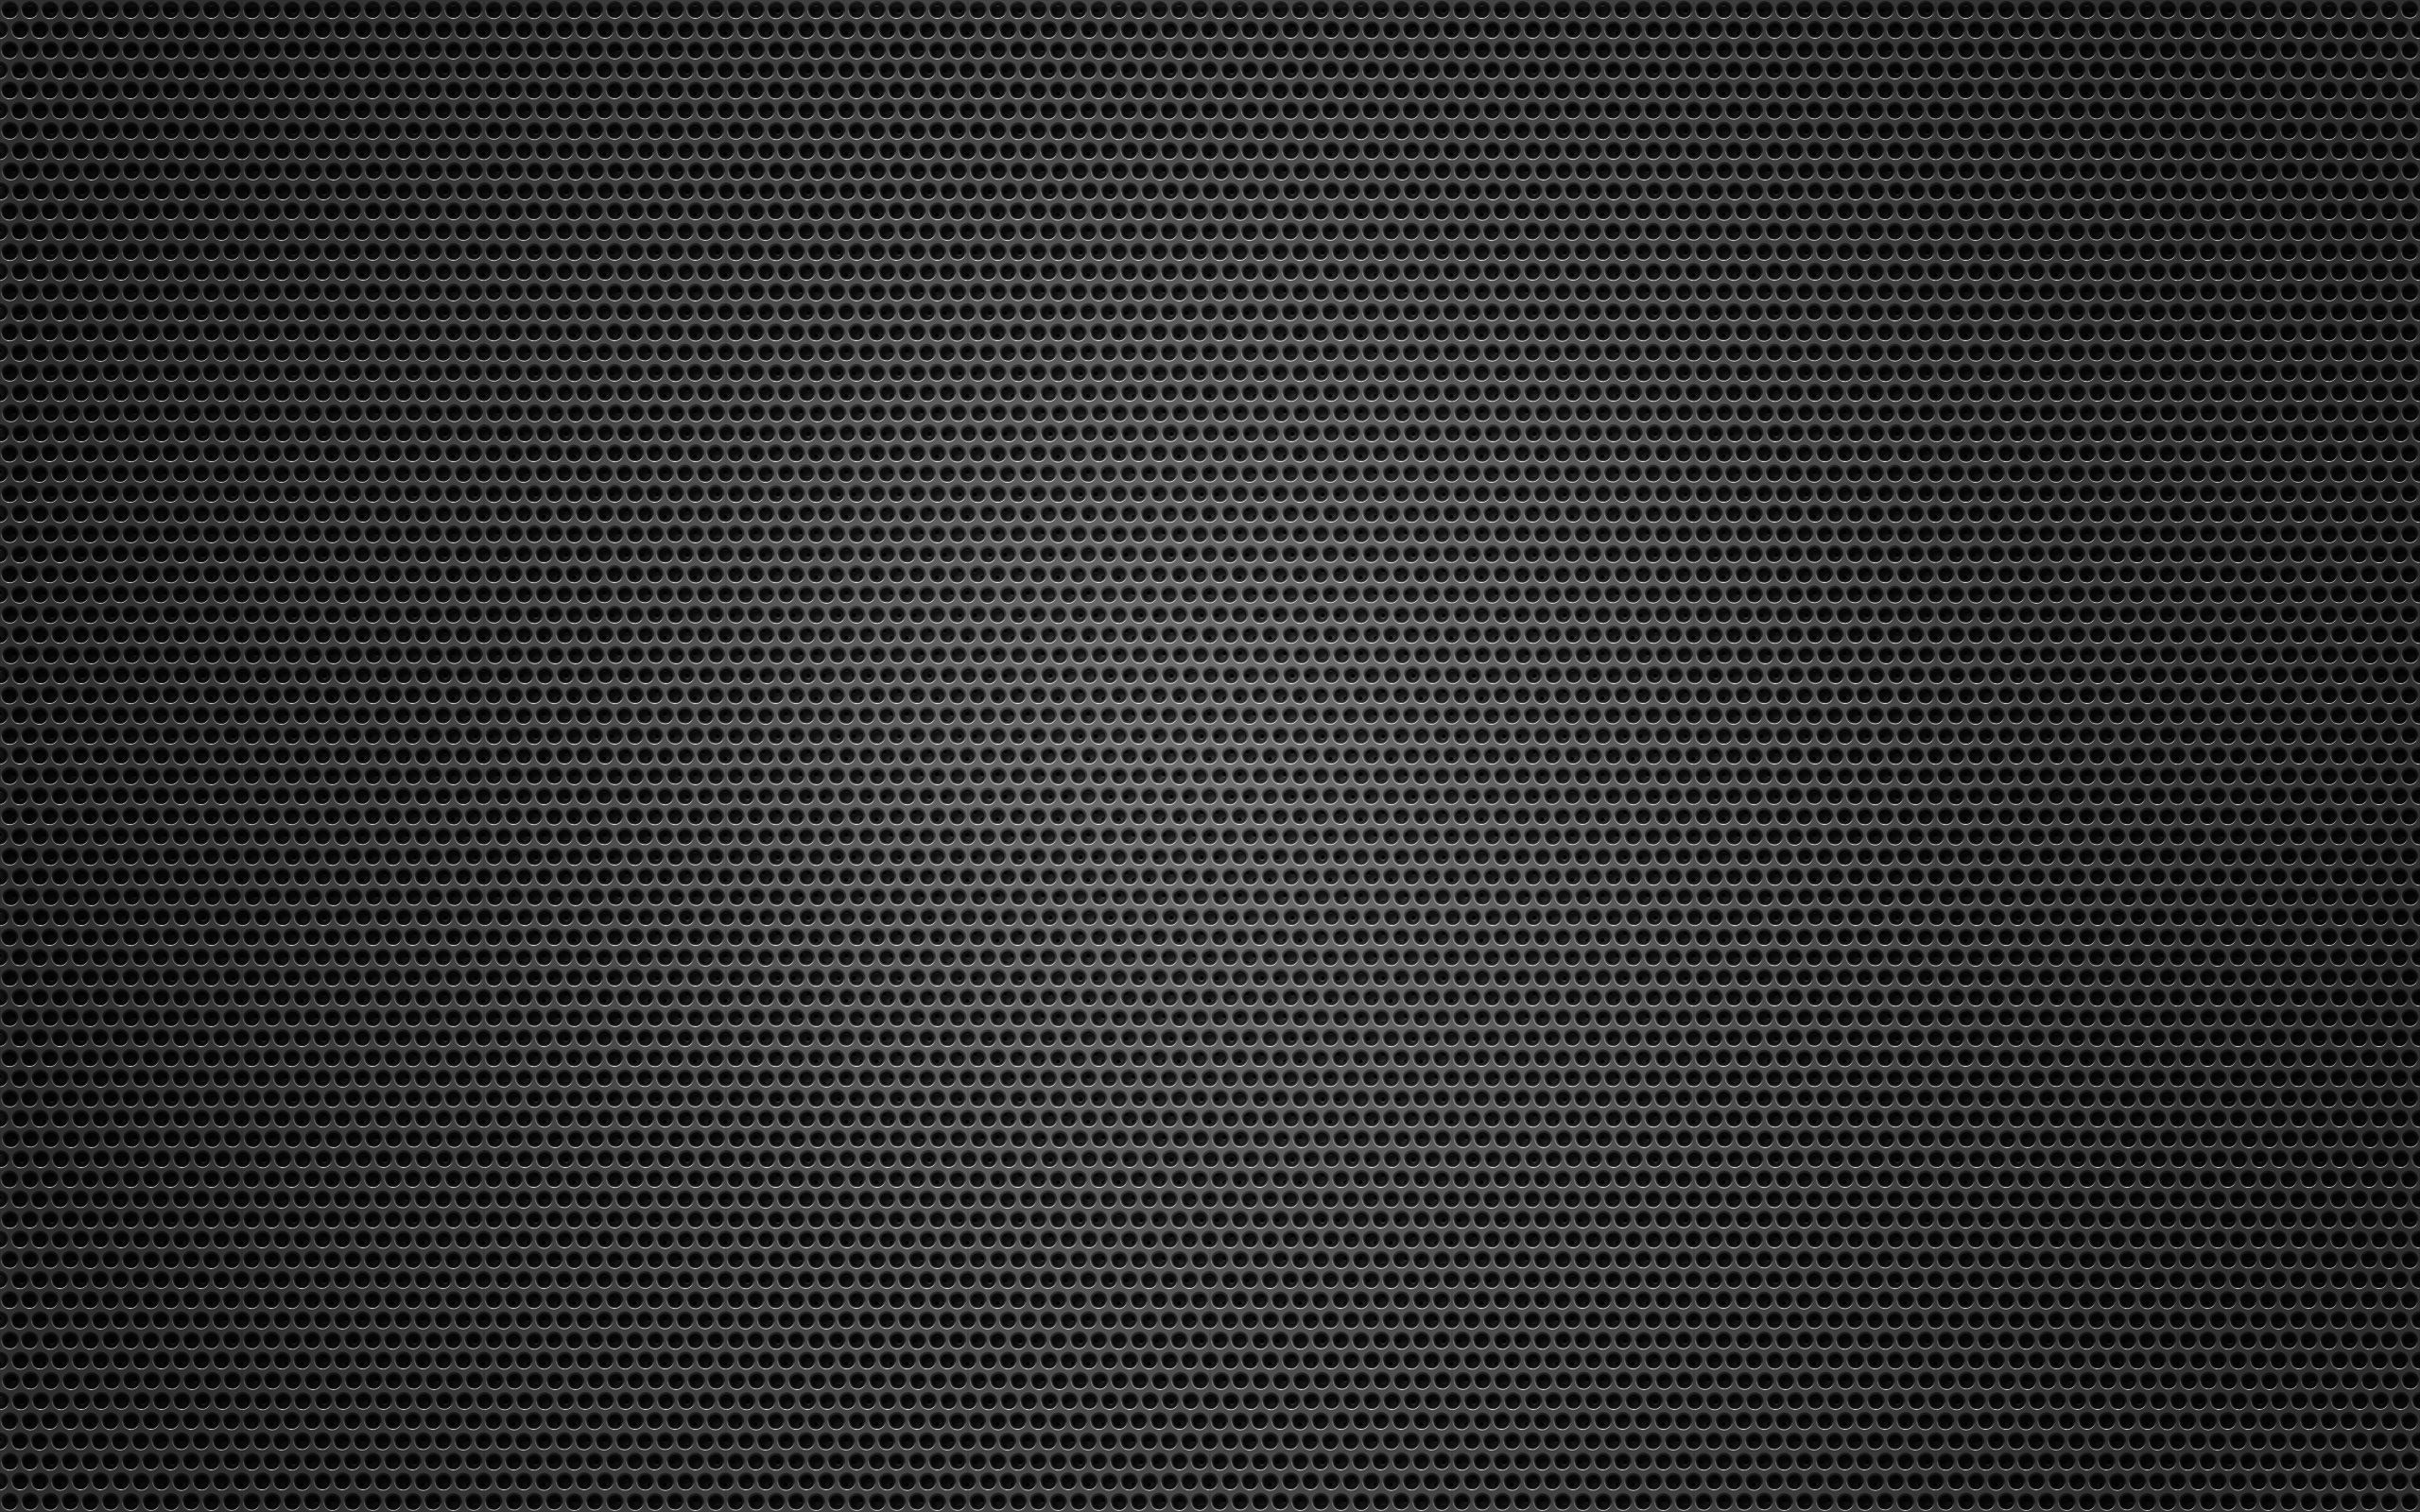 metal mesh steel black Backgrounds Textures Black background 2560x1600